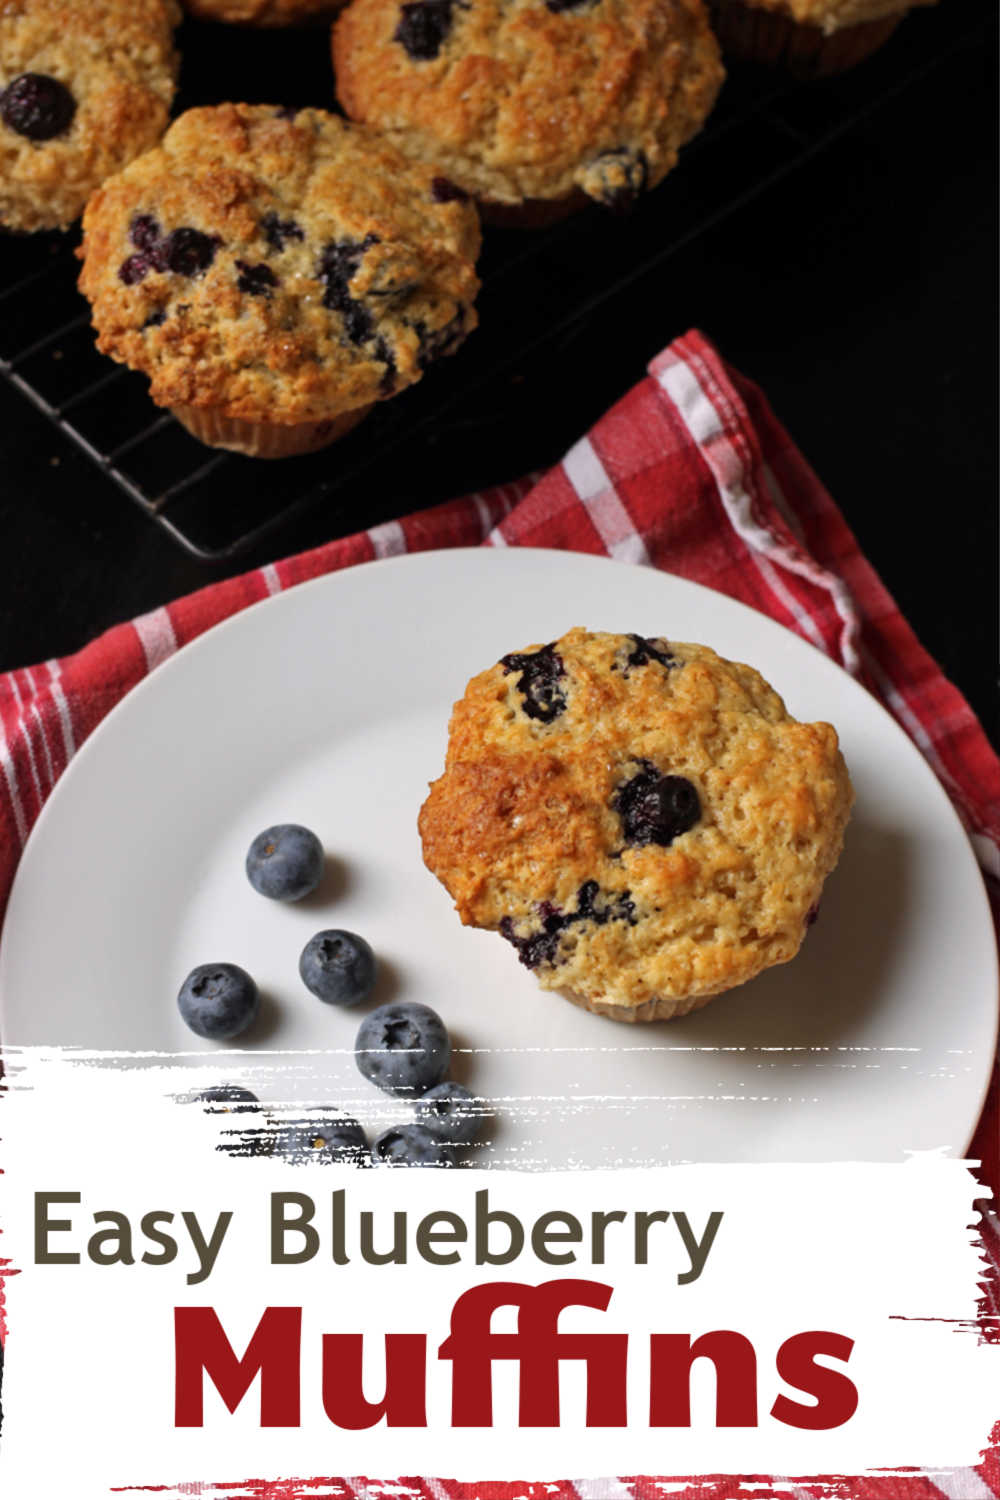 Food on a plate, with Muffin and Blueberry